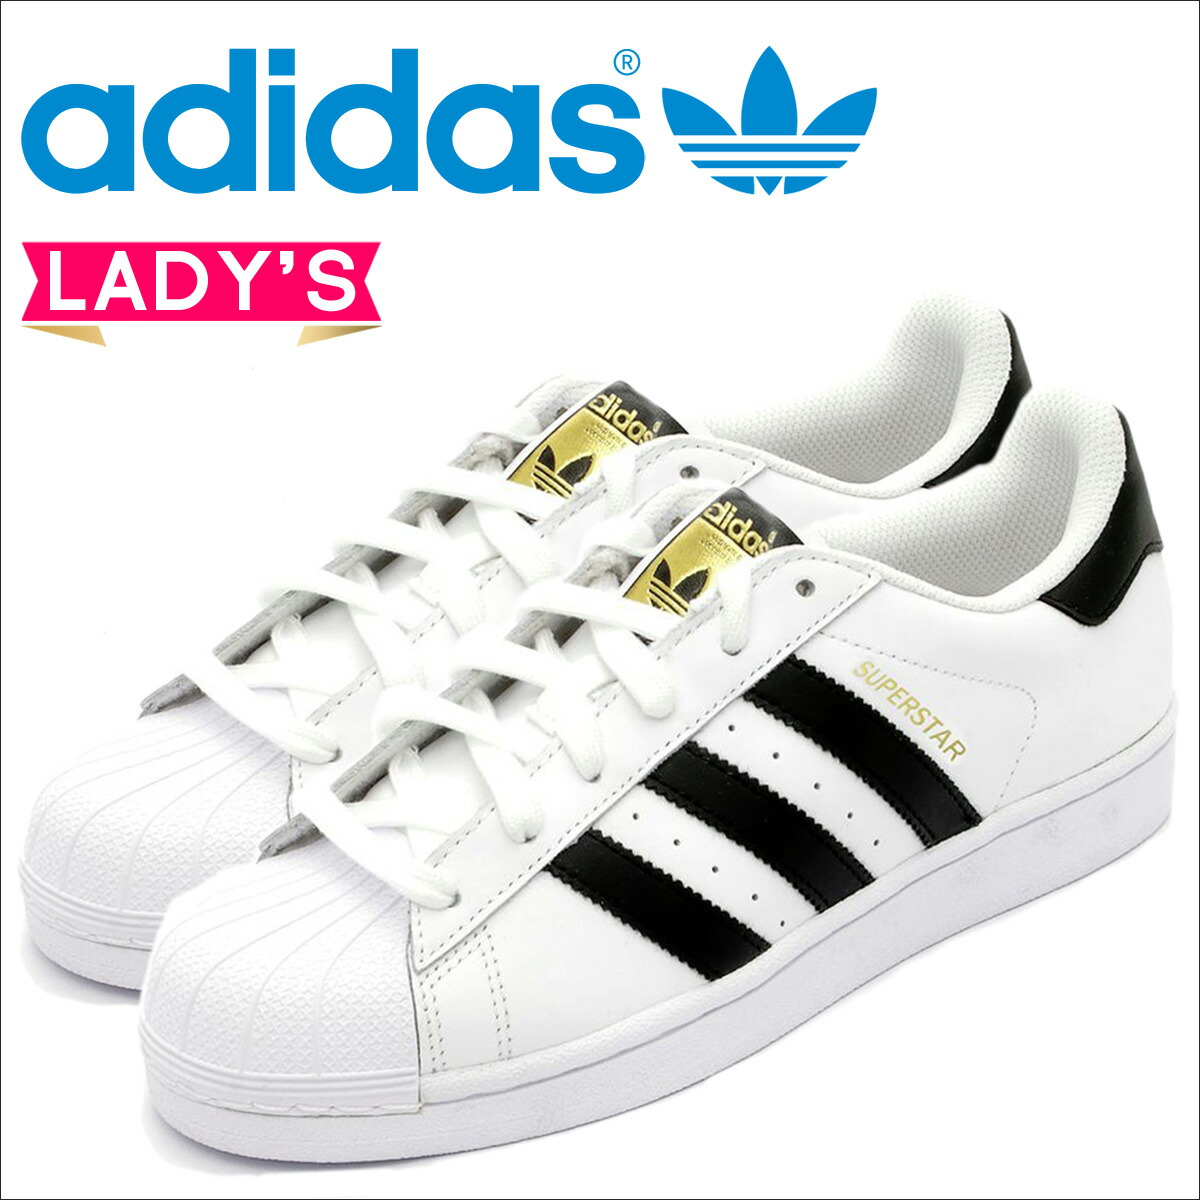 adidas Originals Adidas originals superstar sneakers Lady's SUPERSTAR J C77154 shoes white white